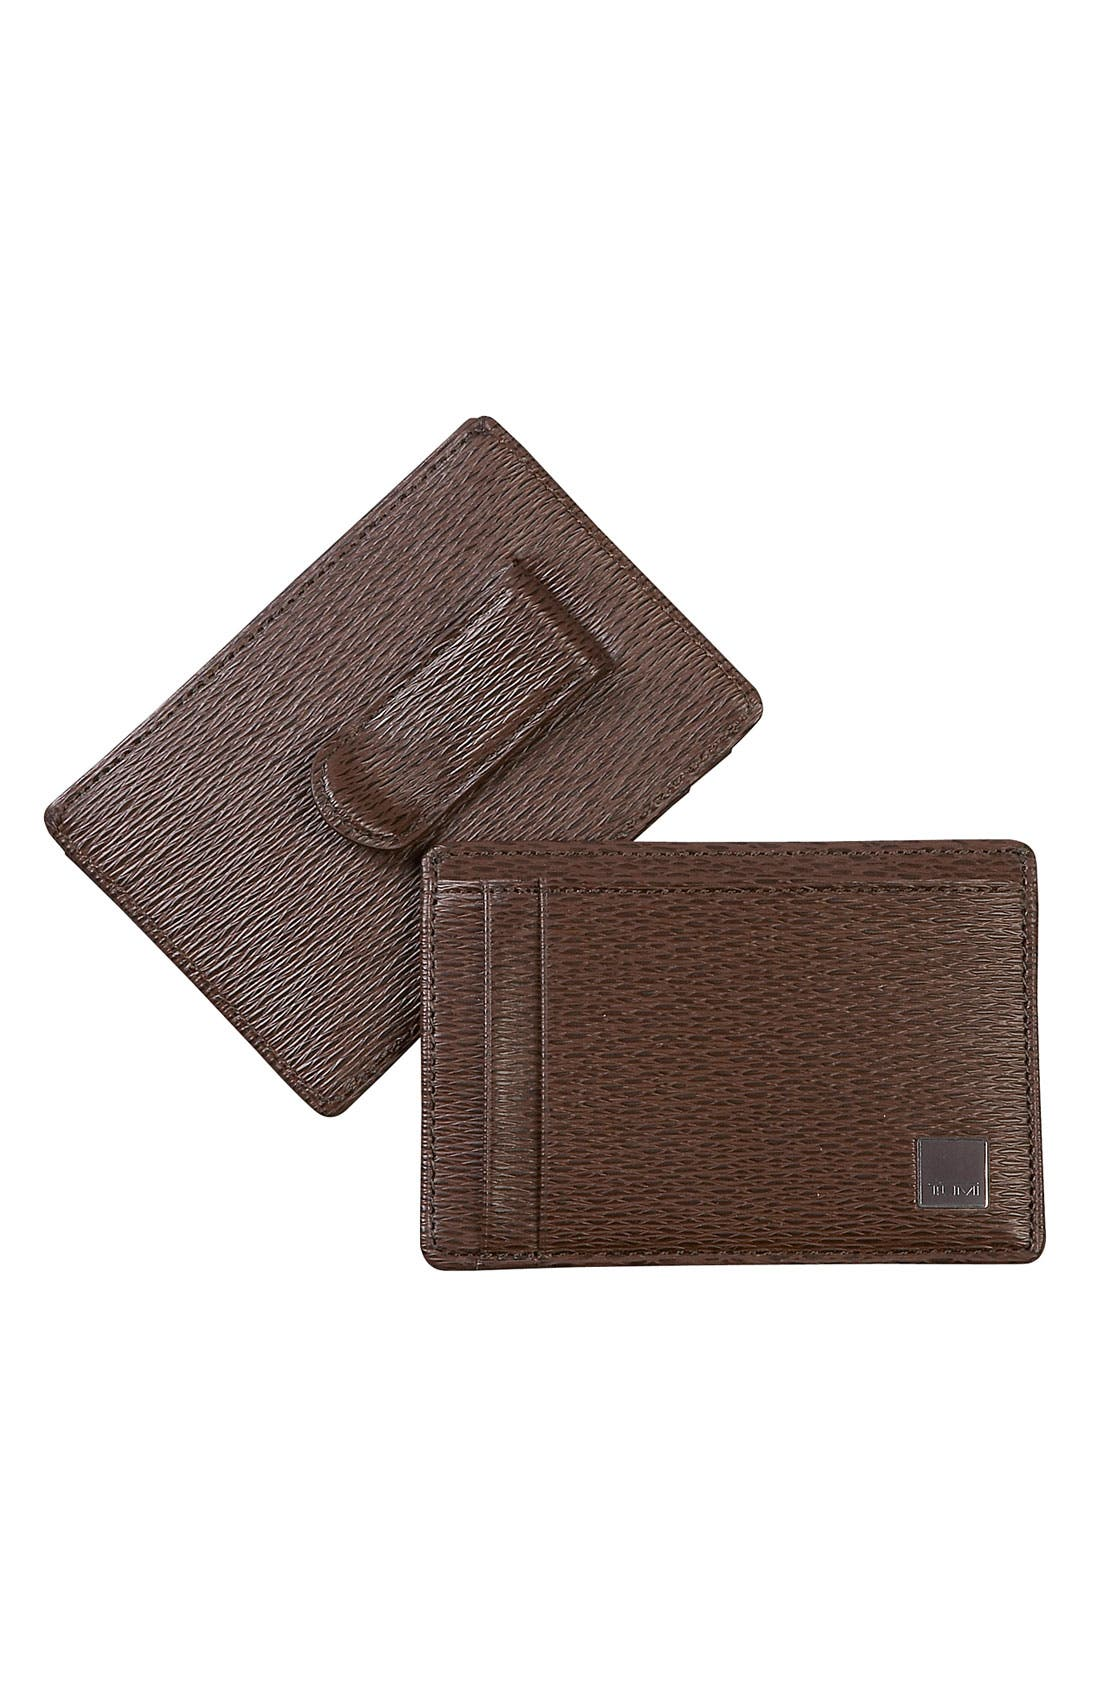 Alternate Image 1 Selected - Tumi 'Monaco' Money Clip Card Case